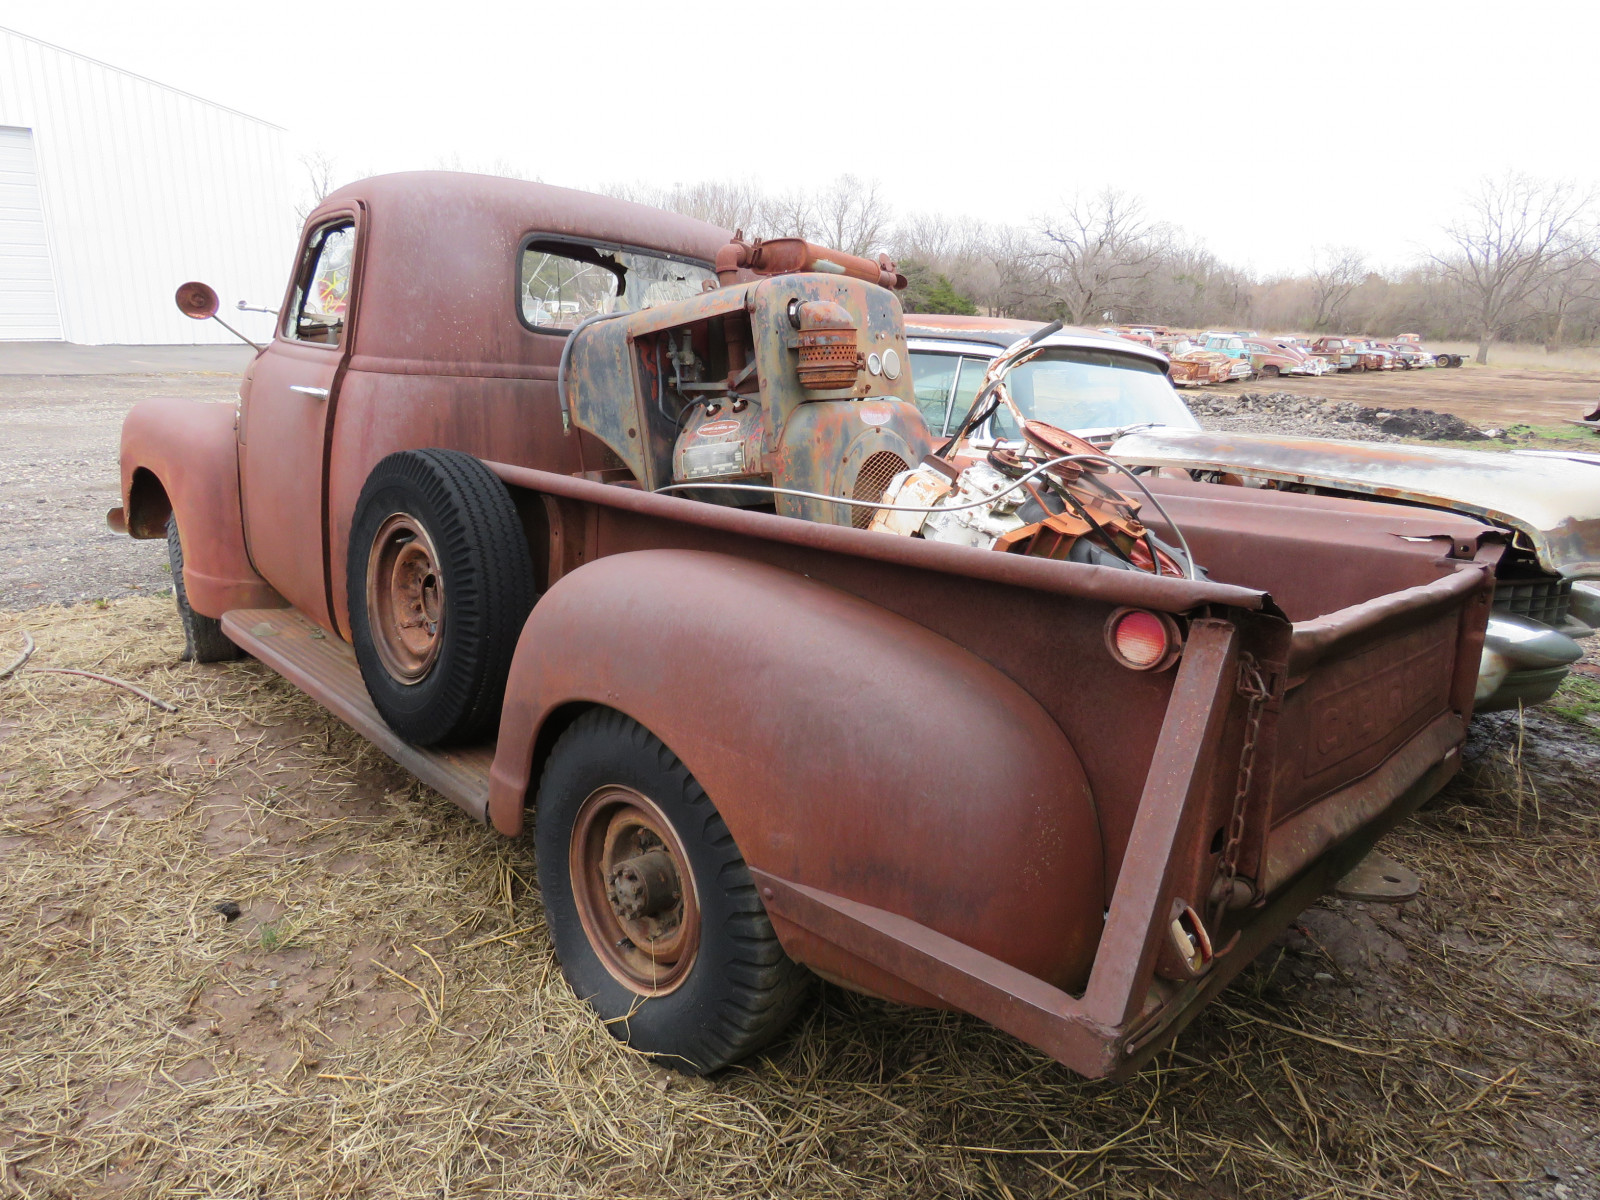 1949 Chevrolet 3600 Series Pickup 5GRA2194 - Image 4